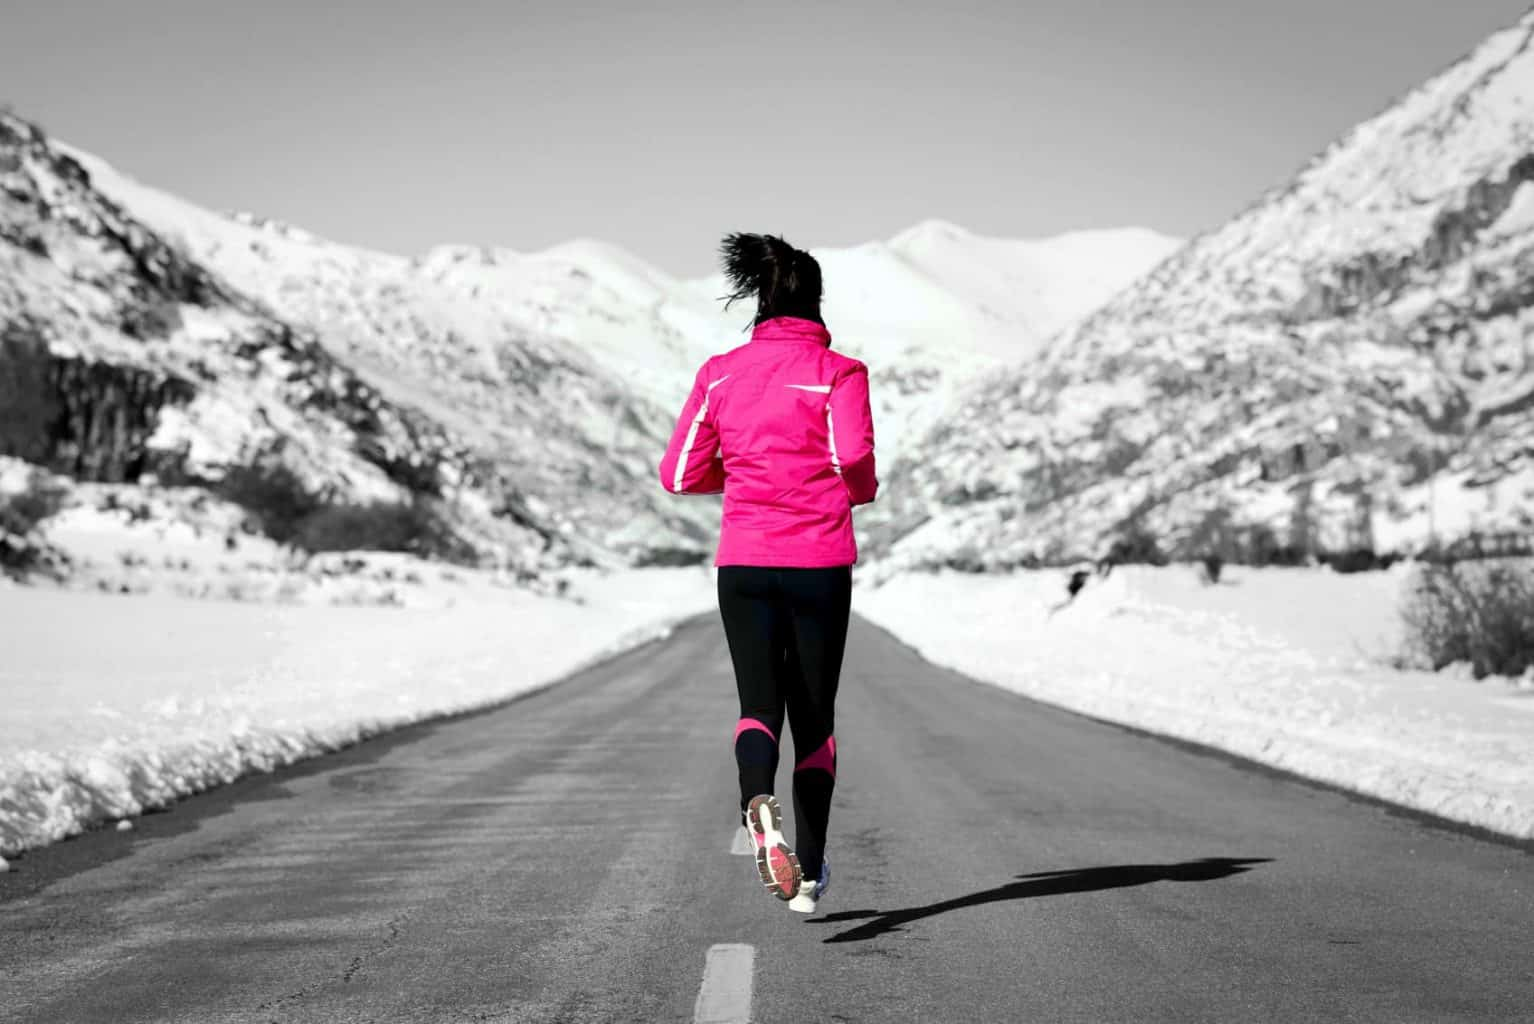 Woman running in cross country road on winter. Rear view of female runner training for marathon in snowy mountains landscape.